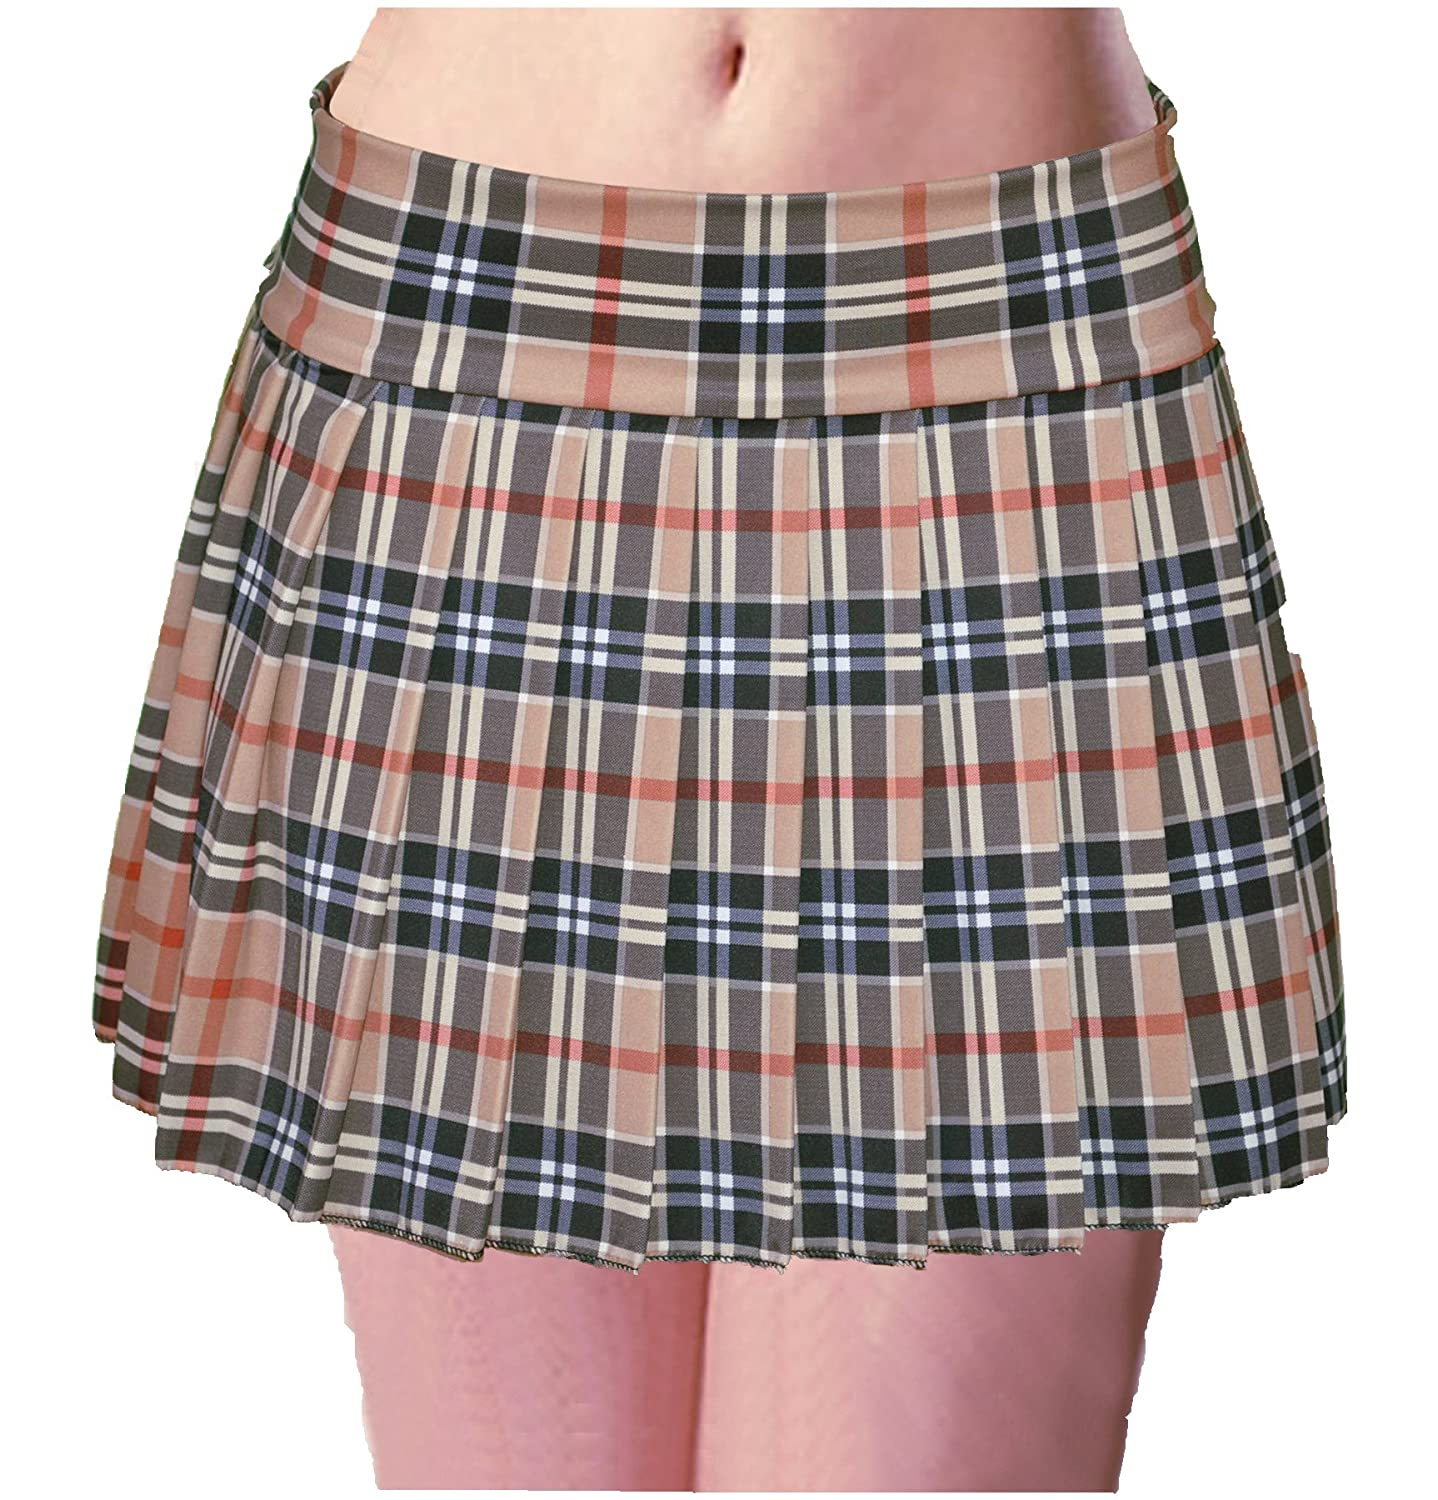 Schoolgirl Tartan Plaid Pleated Mini Skirt Tan Mocha Stretch Plus